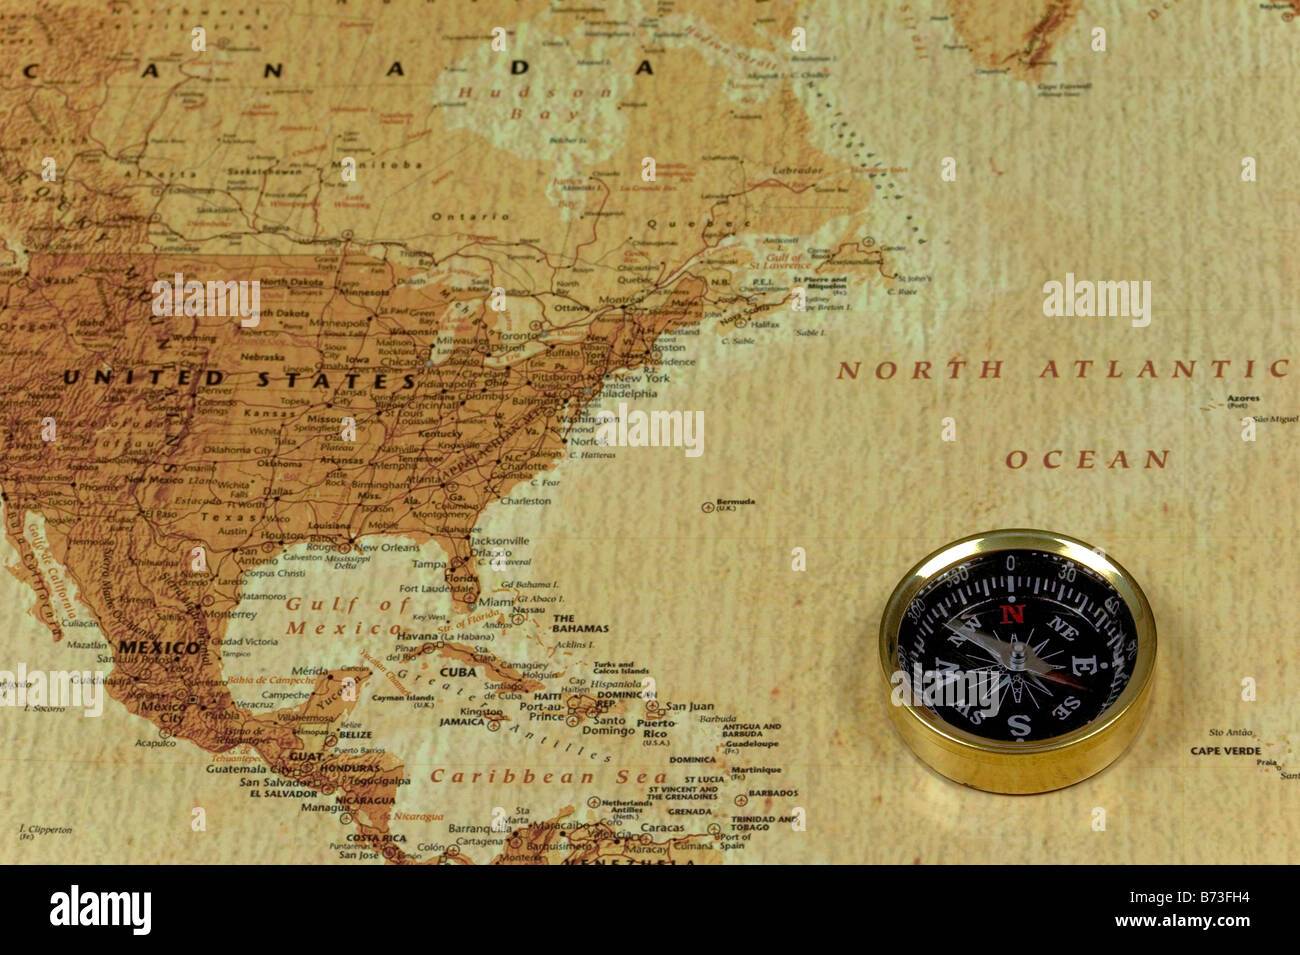 A Brss Compass On An Old Map Showing The North Atlantic Ocean And - Us map with compass